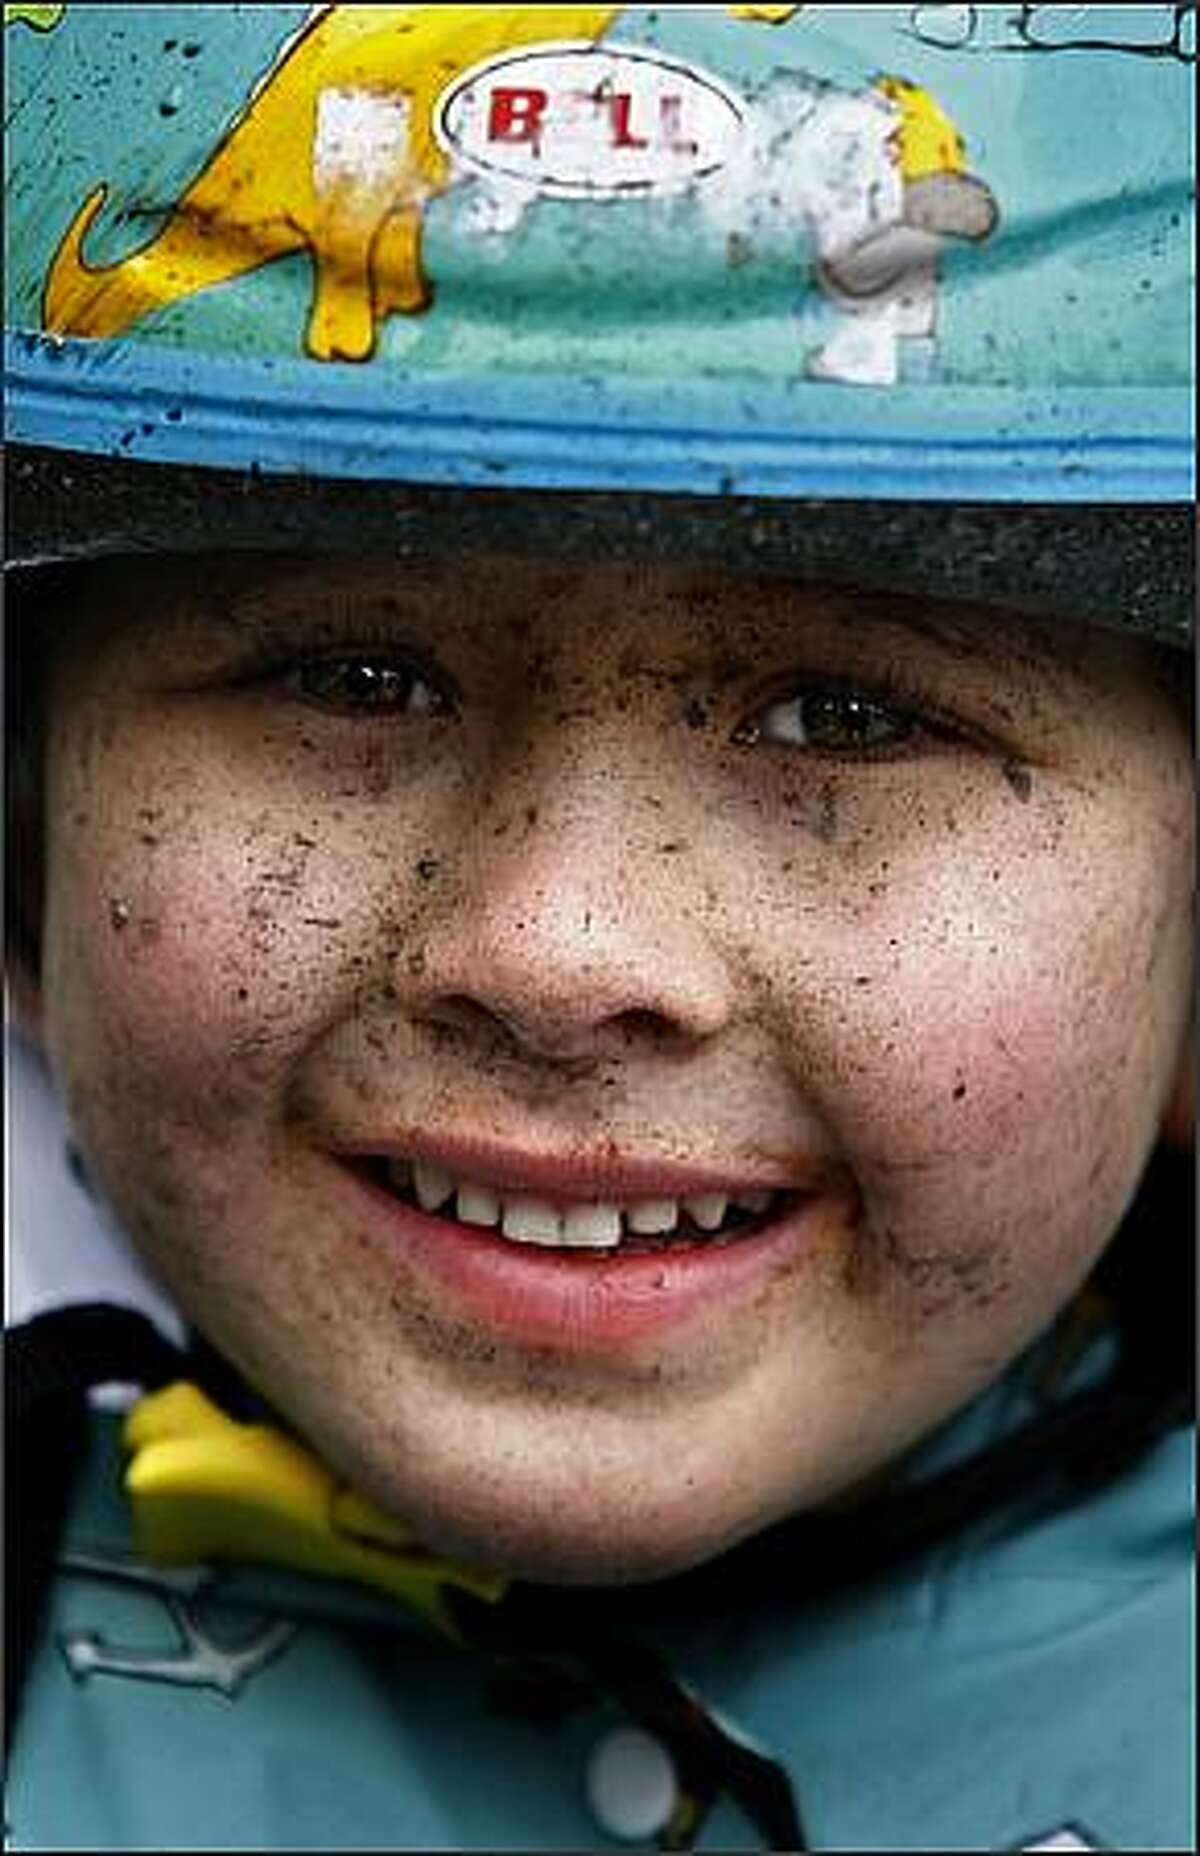 Jonathan Sugimoto, 4, of Poulsbo is smiling despite a dirty afternoon traveling behind his dad during the Chilly Hilly bicycle ride around Bainbridge Island.